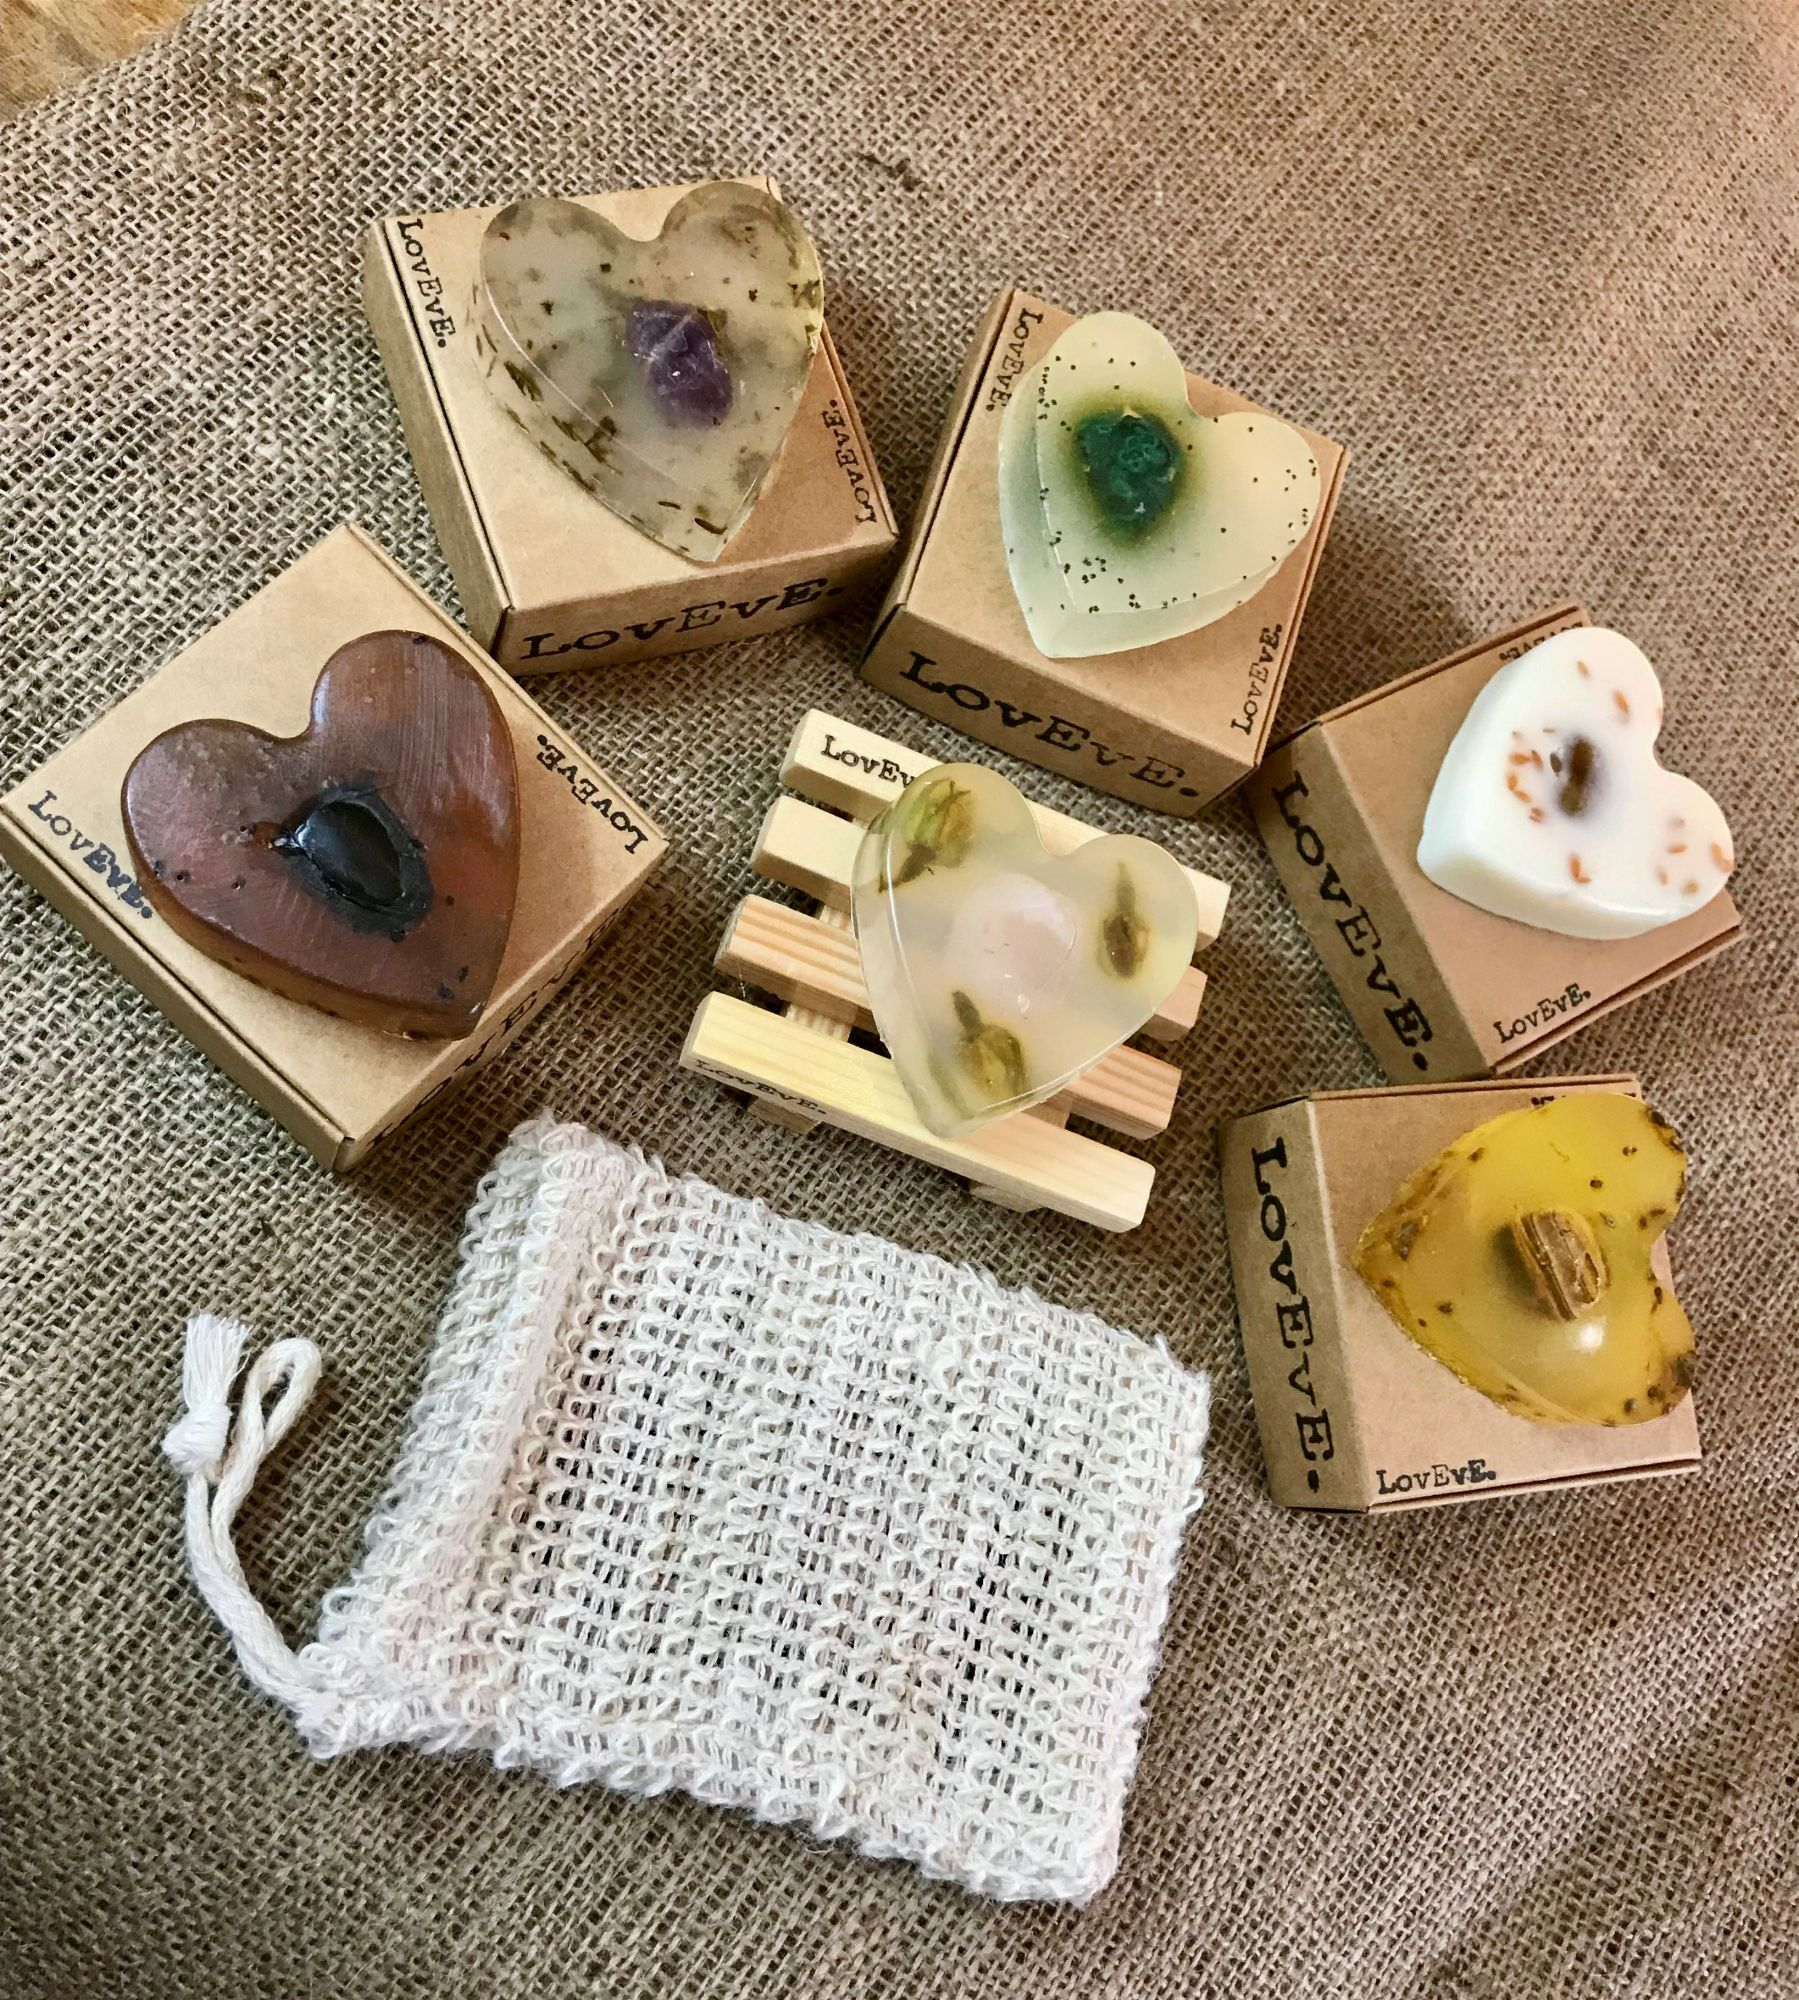 Selection of 6 heart shaped soaps